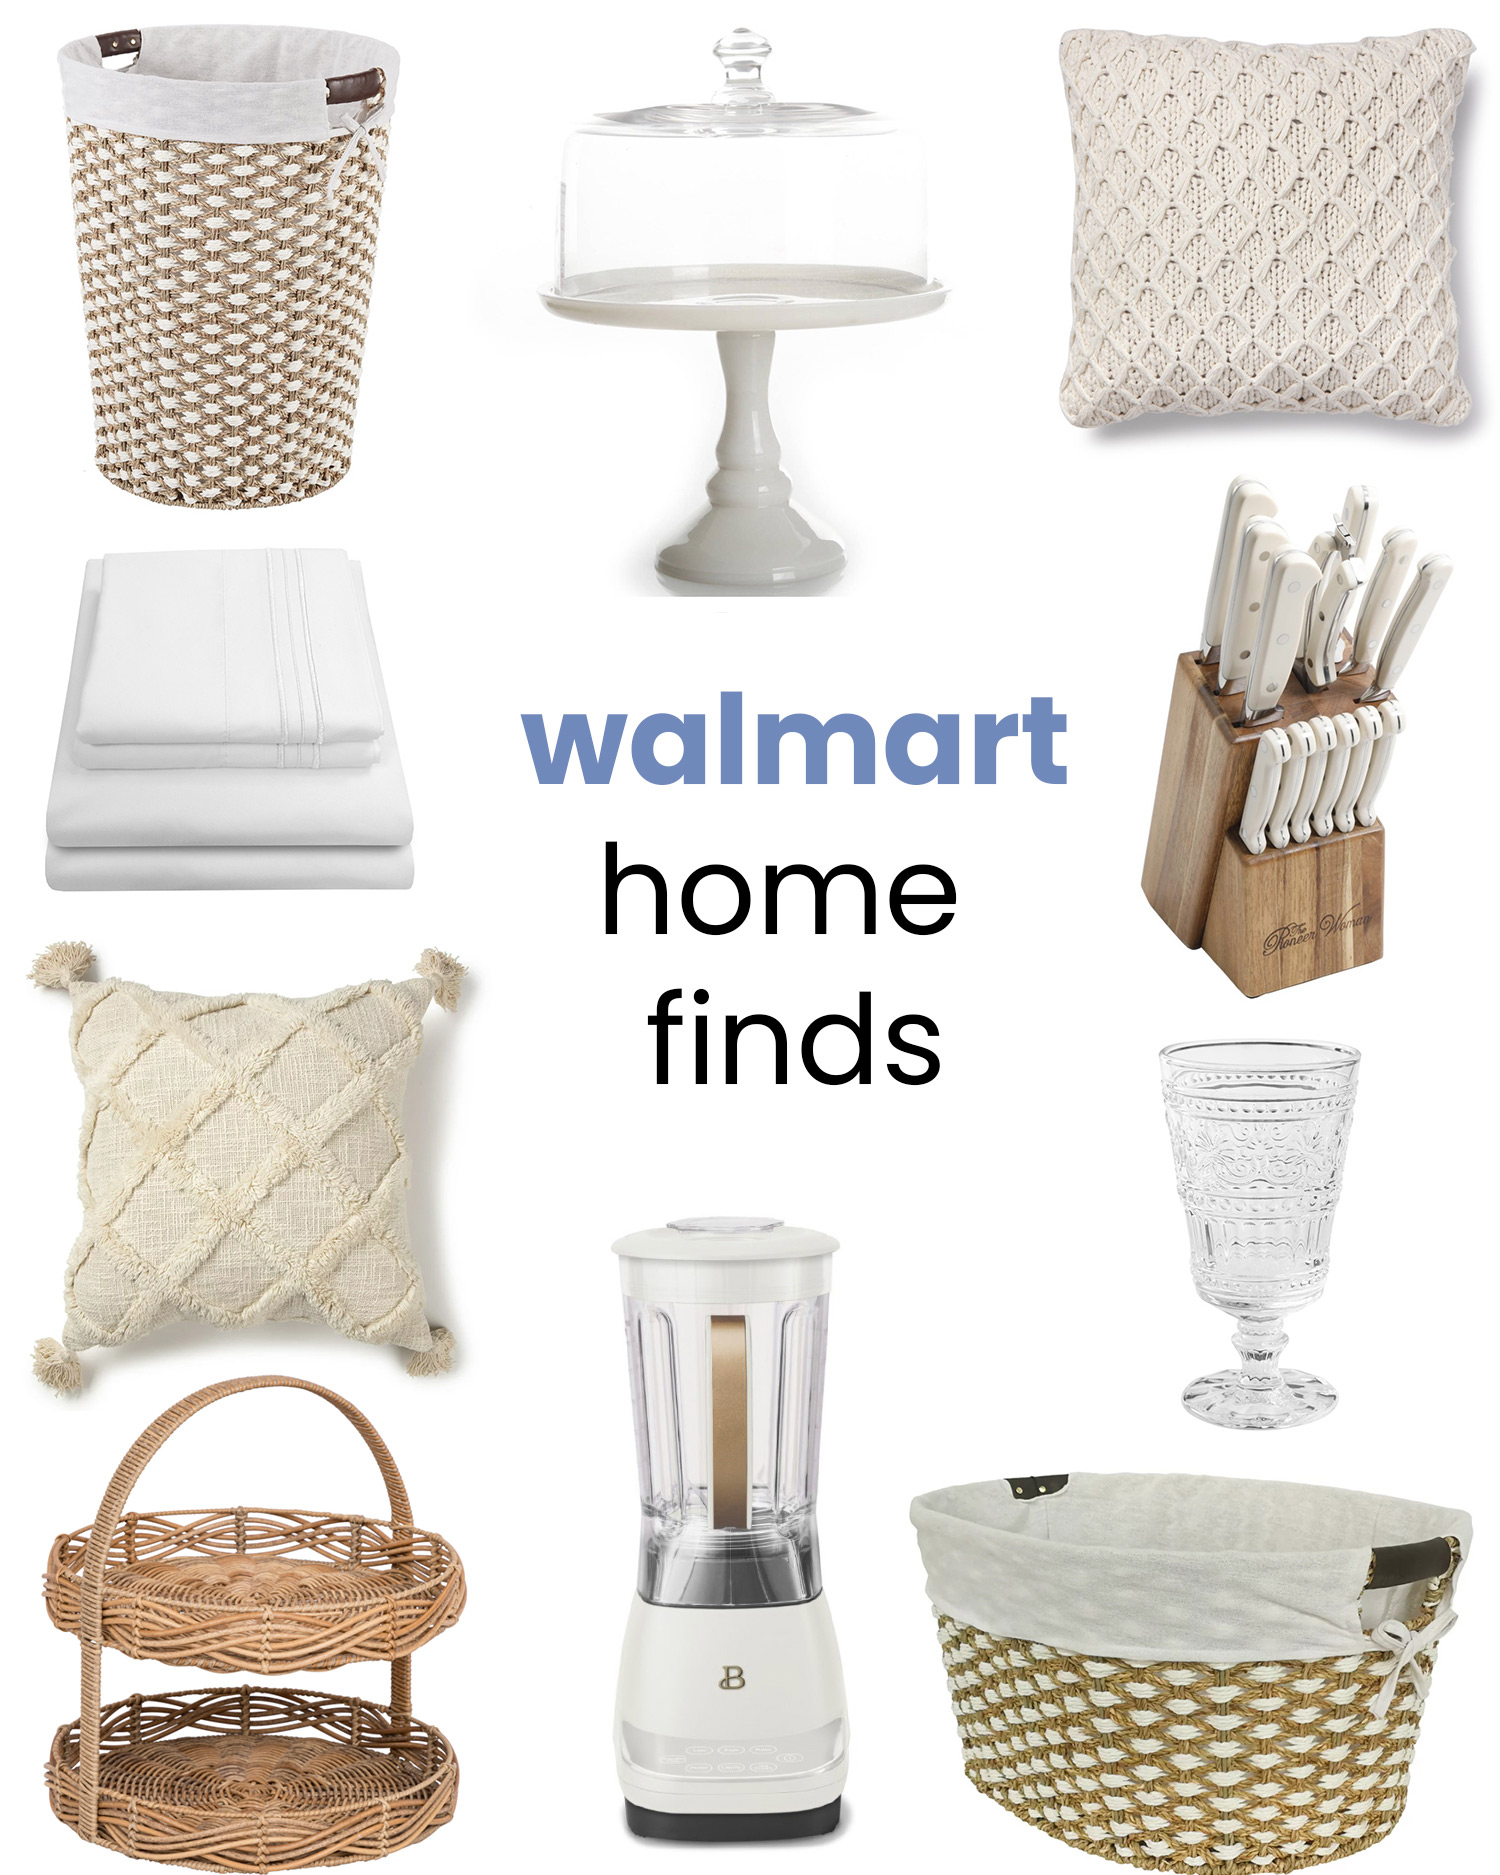 Affordable white and neutral home decor items from Walmart - all under $50!